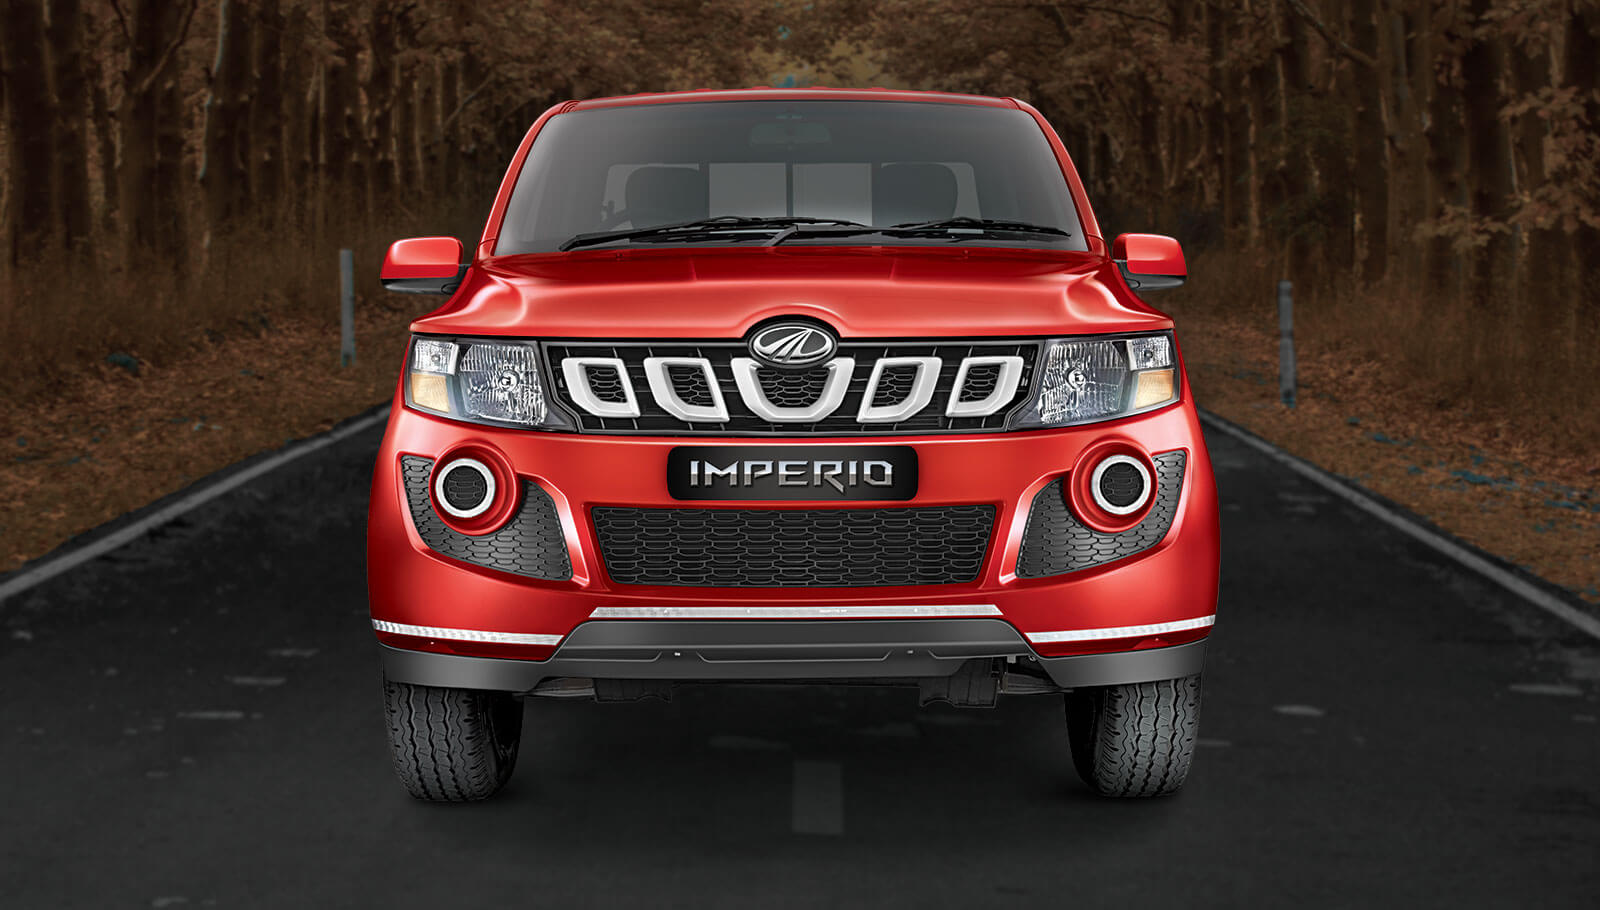 Mahindra Imperio Bumper Grille Headlamp